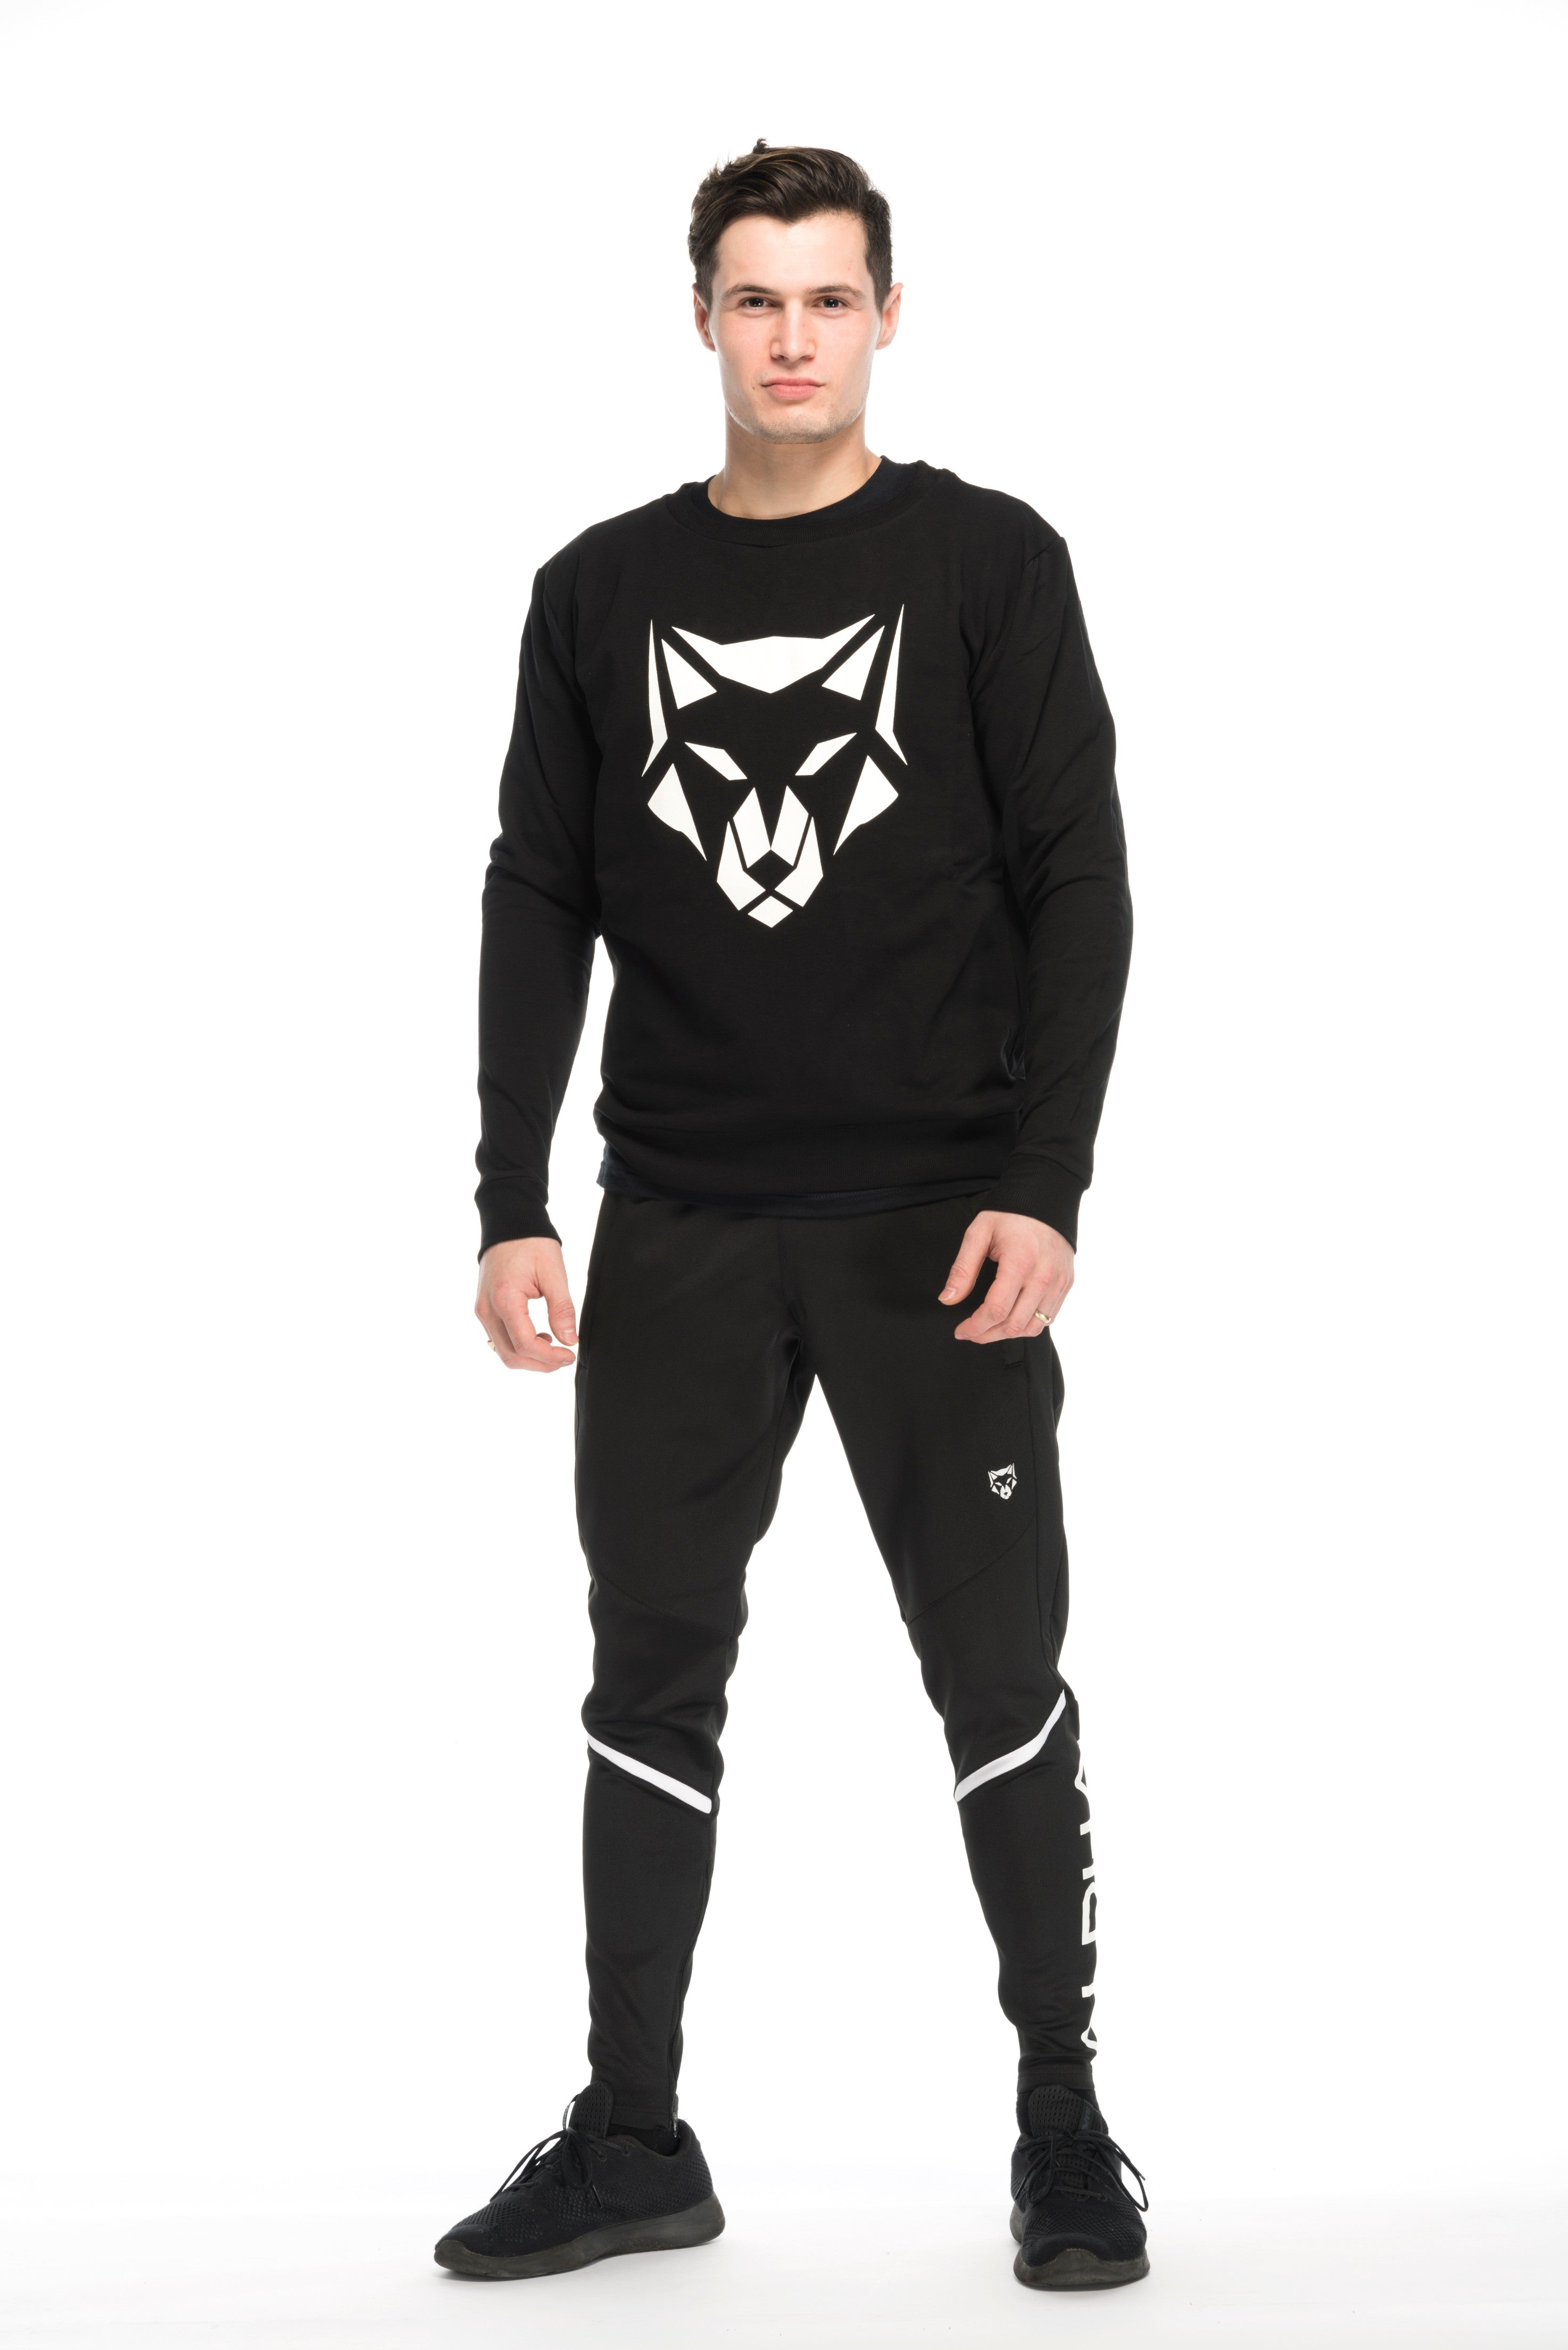 Fenrir Statement Sweatshirt